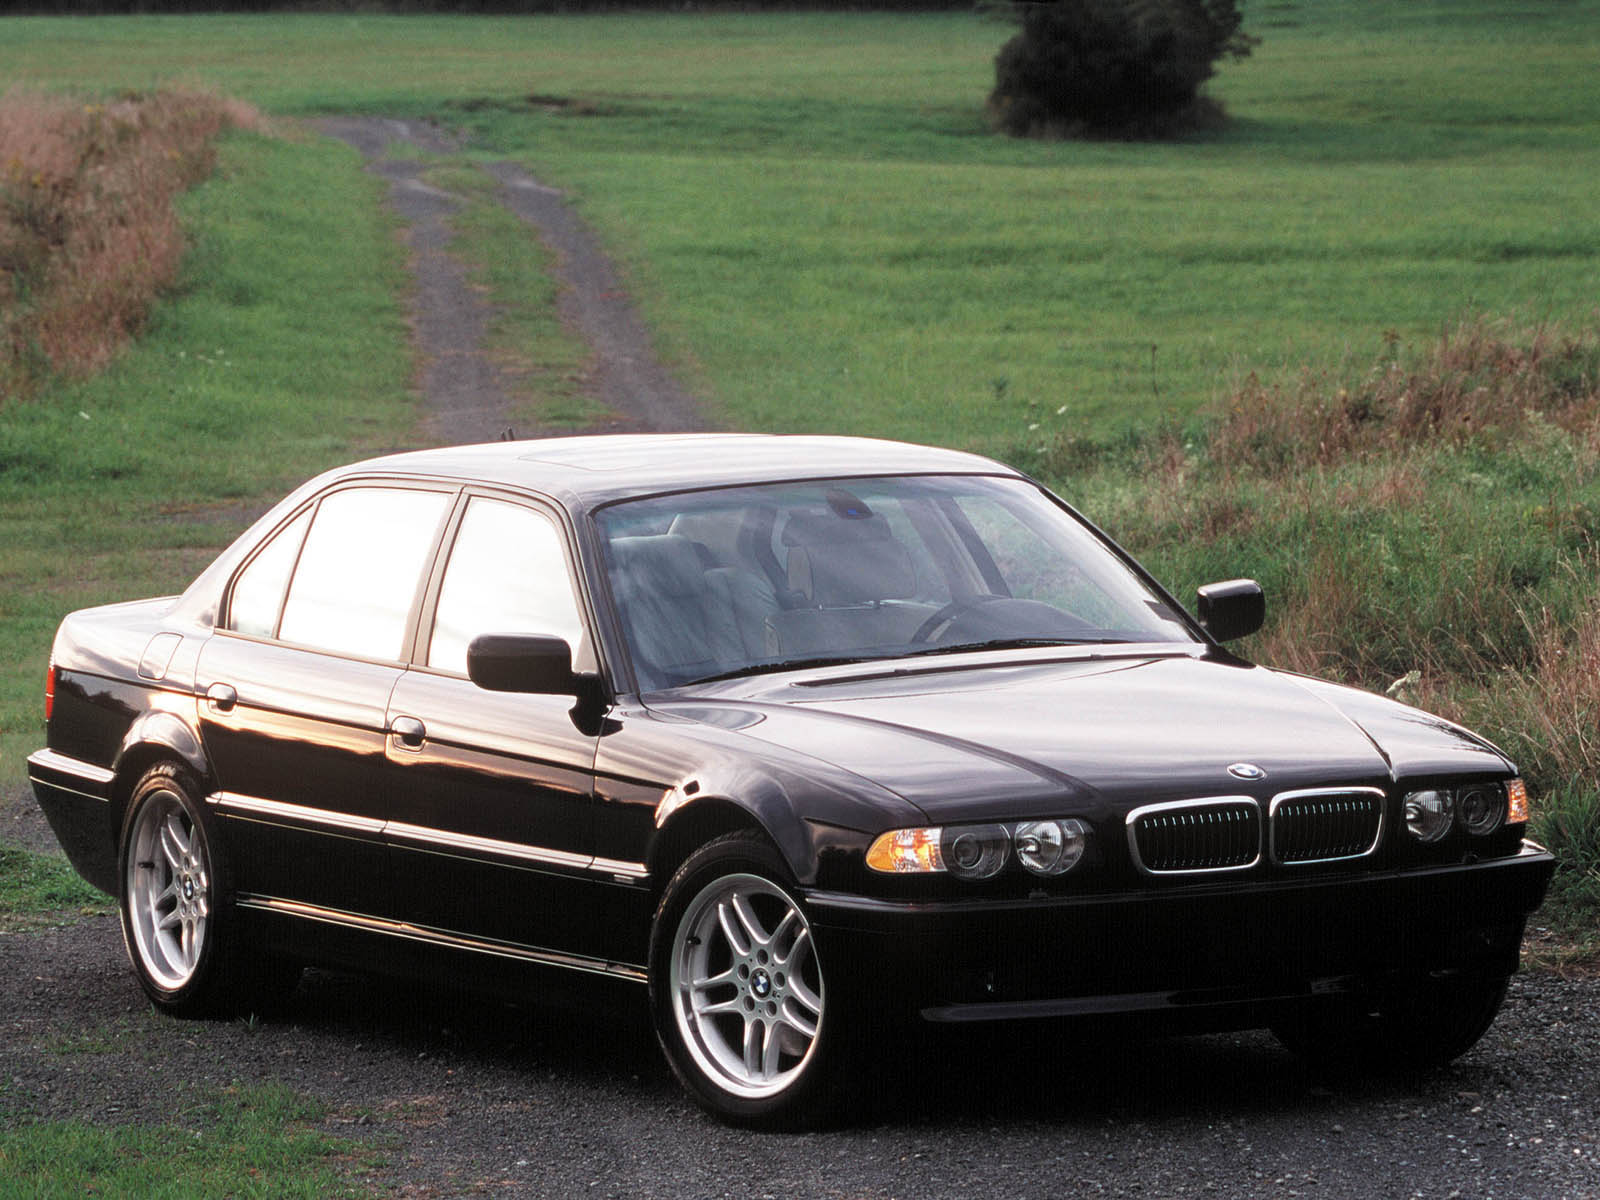 bmw 7 series e38 picture 10106 bmw photo gallery. Black Bedroom Furniture Sets. Home Design Ideas